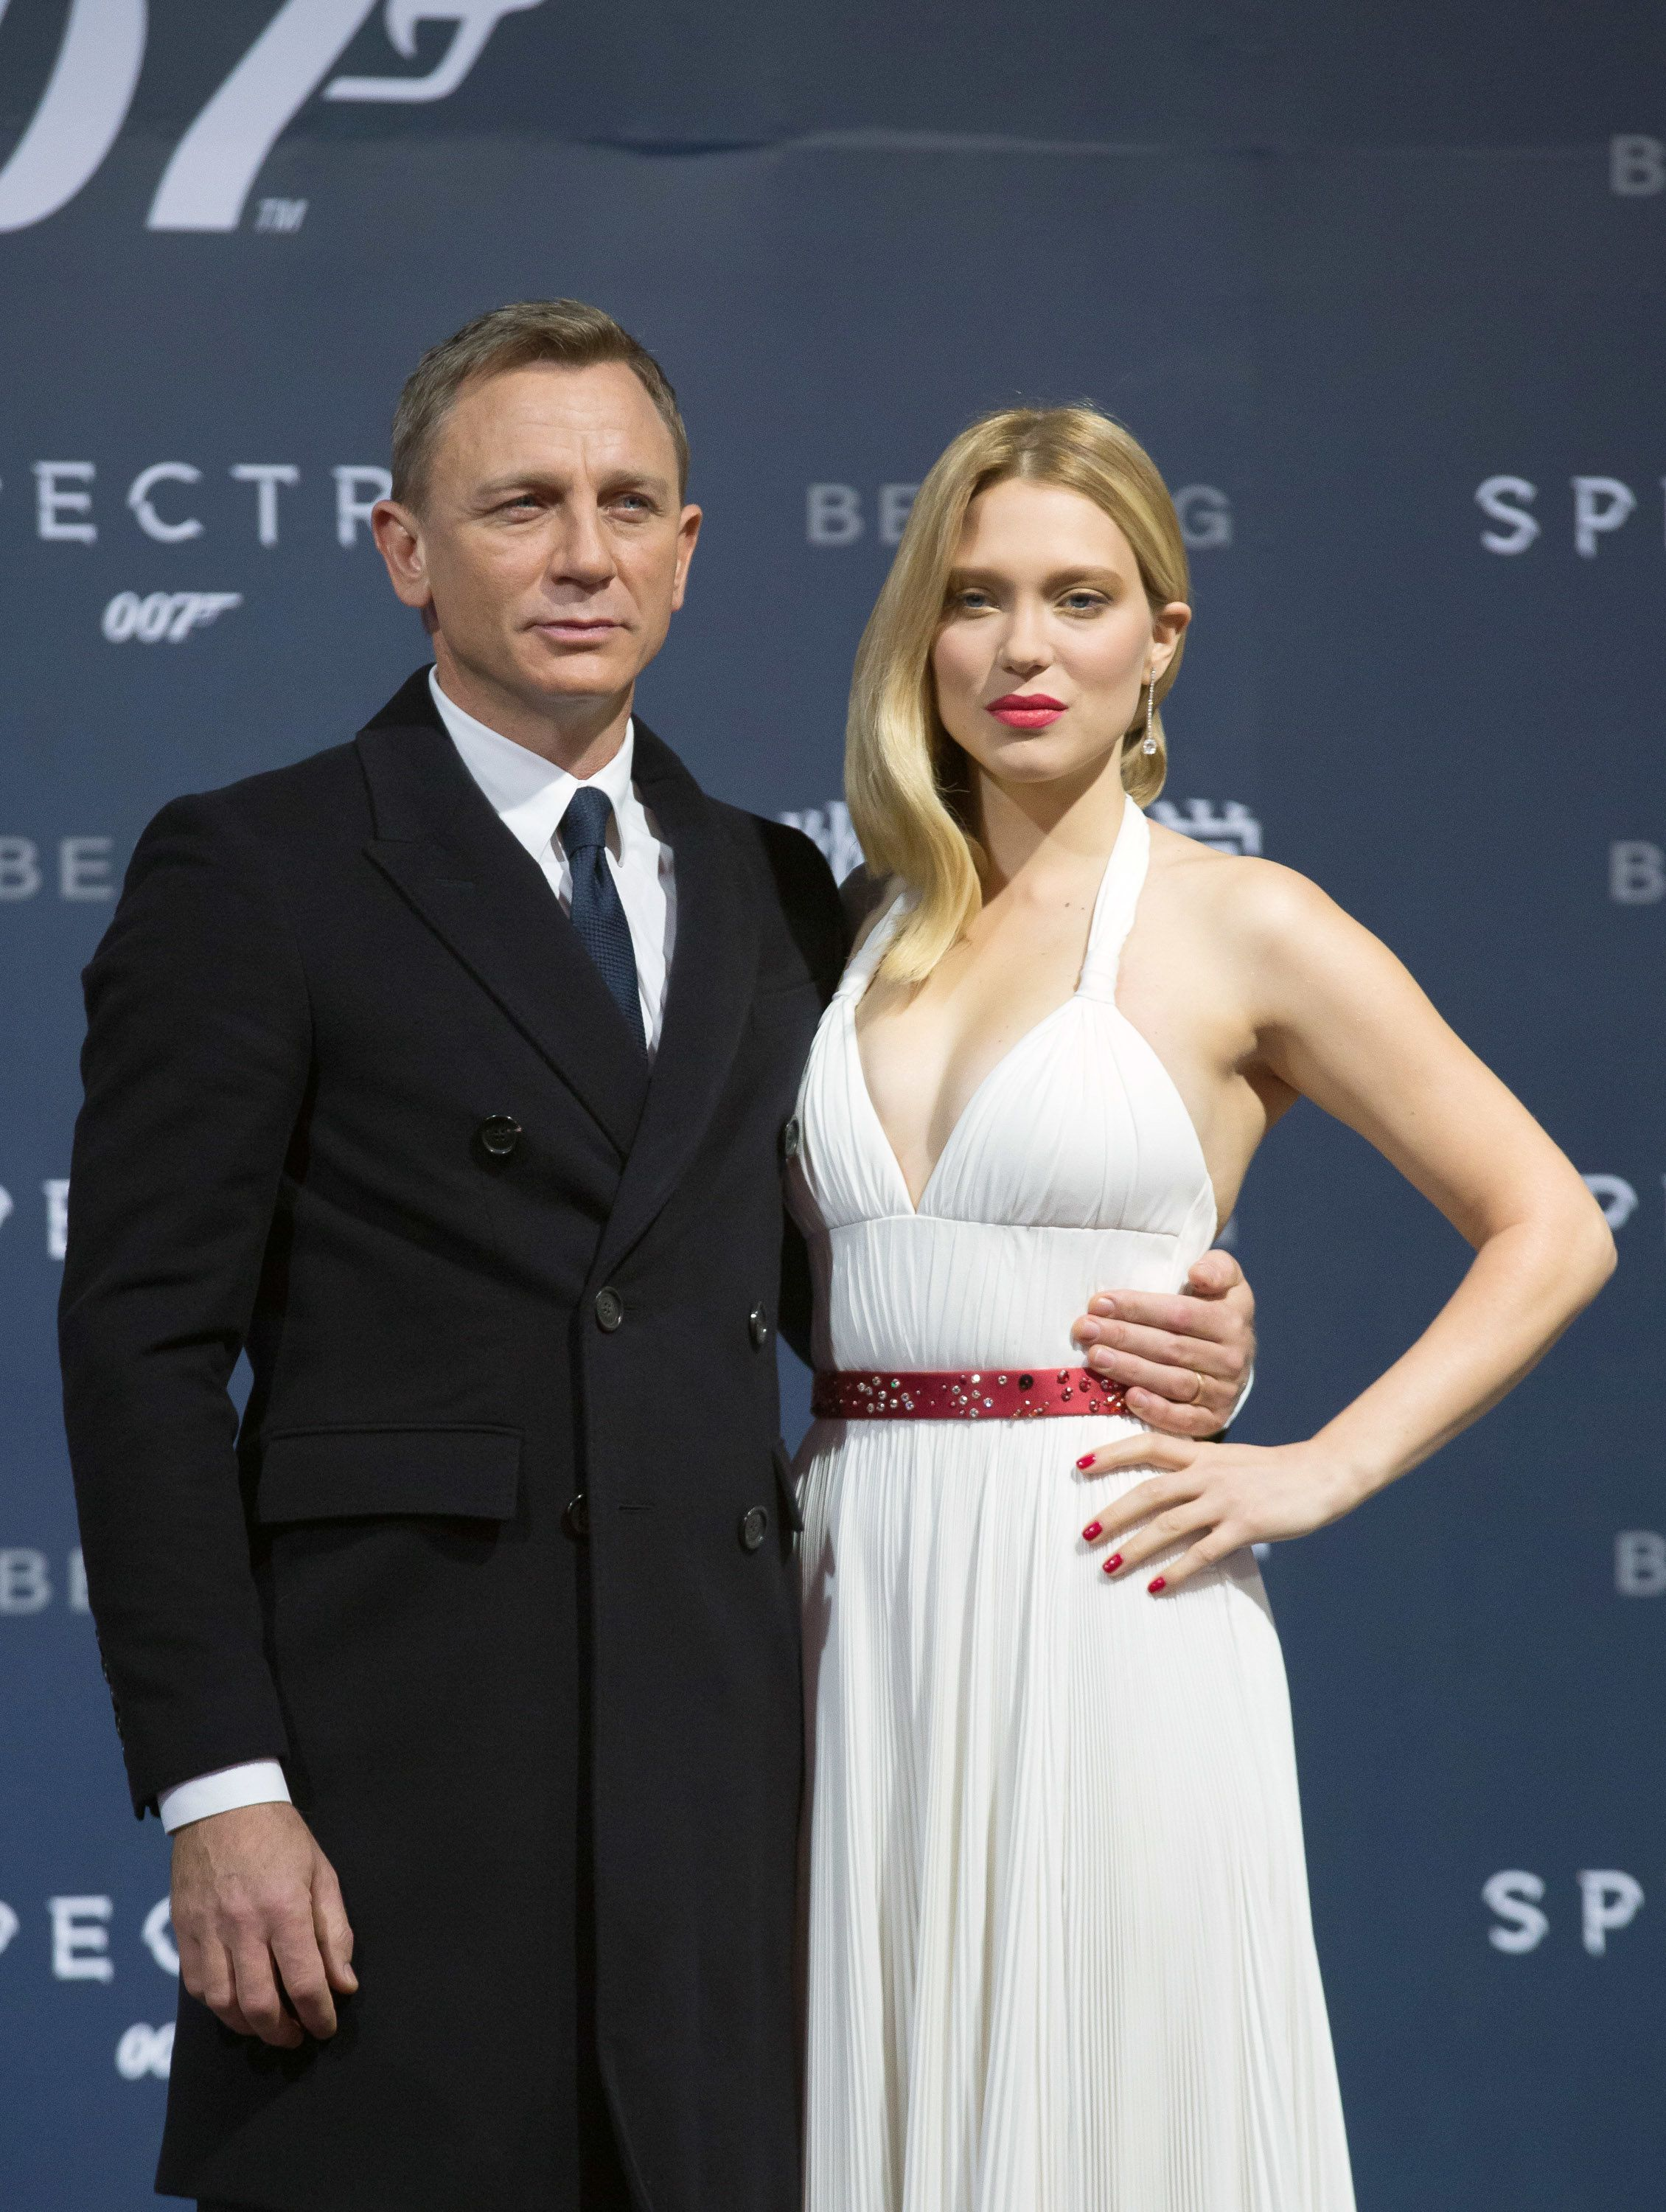 BEIJING, CHINA - NOVEMBER 12:  (CHINA OUT) Actor Daniel Craig and actress Lea Seydoux attend 'Spectre' premiere at The Place on November 12, 2015 in Beijing, China.  (Photo by VCG/VCG via Getty Images)